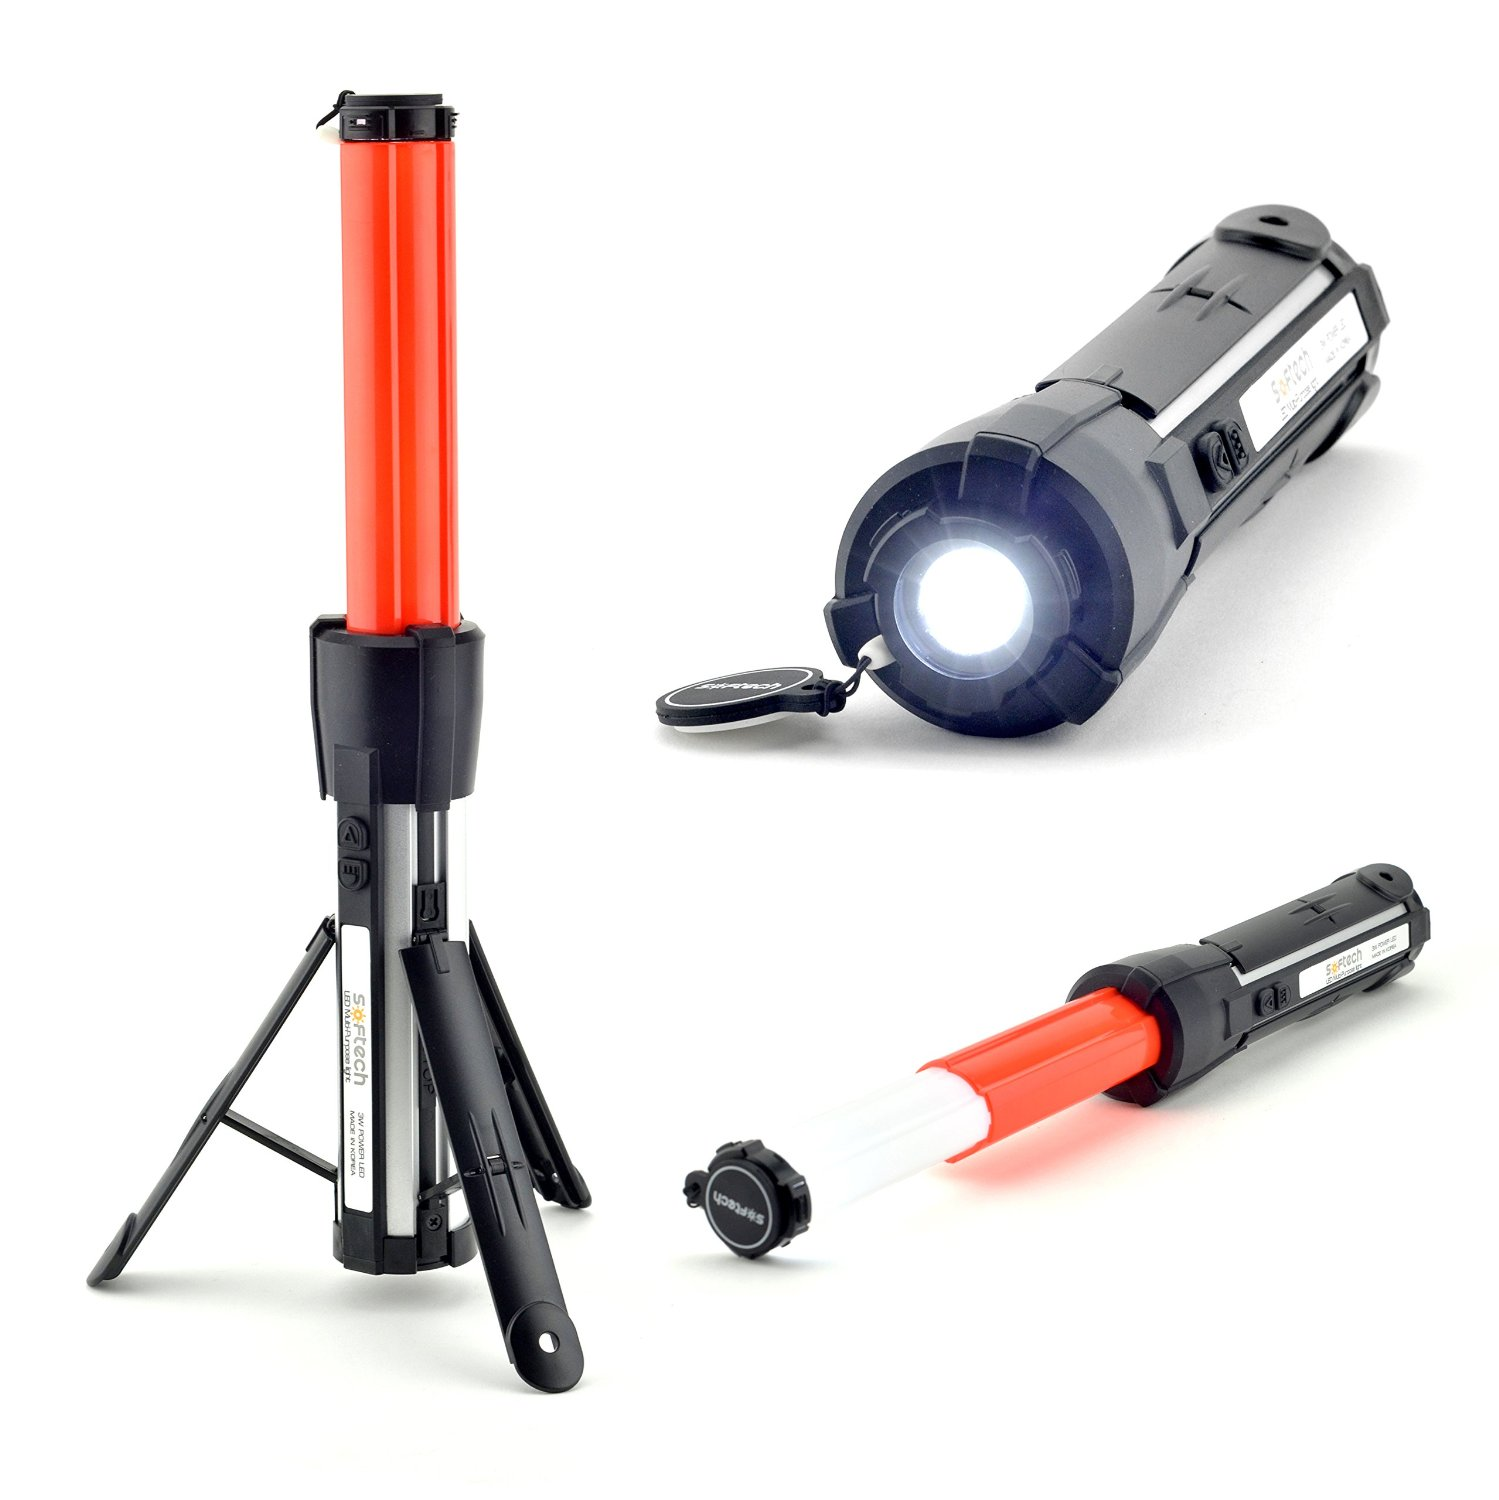 Softech All-in-One LED Flashlight and Safety Beacon / Baton - Emergency Hazard Lights, Lantern, Strobe, Flare & Torch for Cars, Camping, Homes & More!